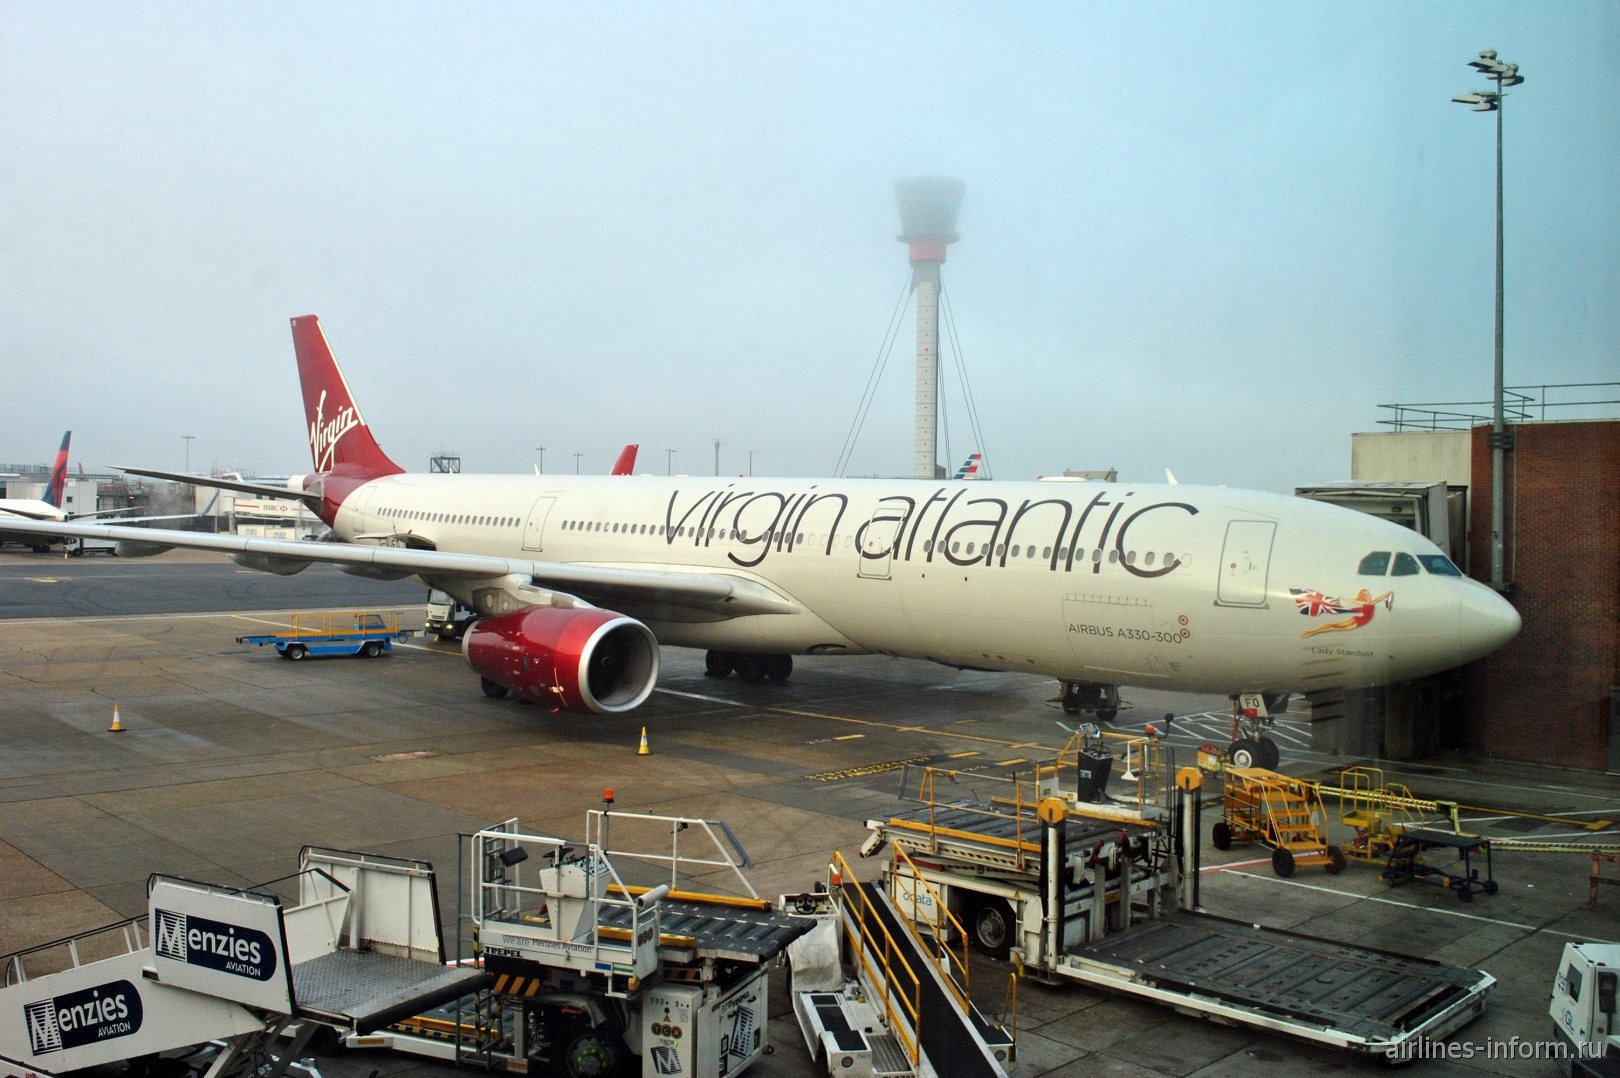 Airbus A330-300 G-VUFO авиакомпании Virgin Atlantic в аэропорту Лондон Хитроу